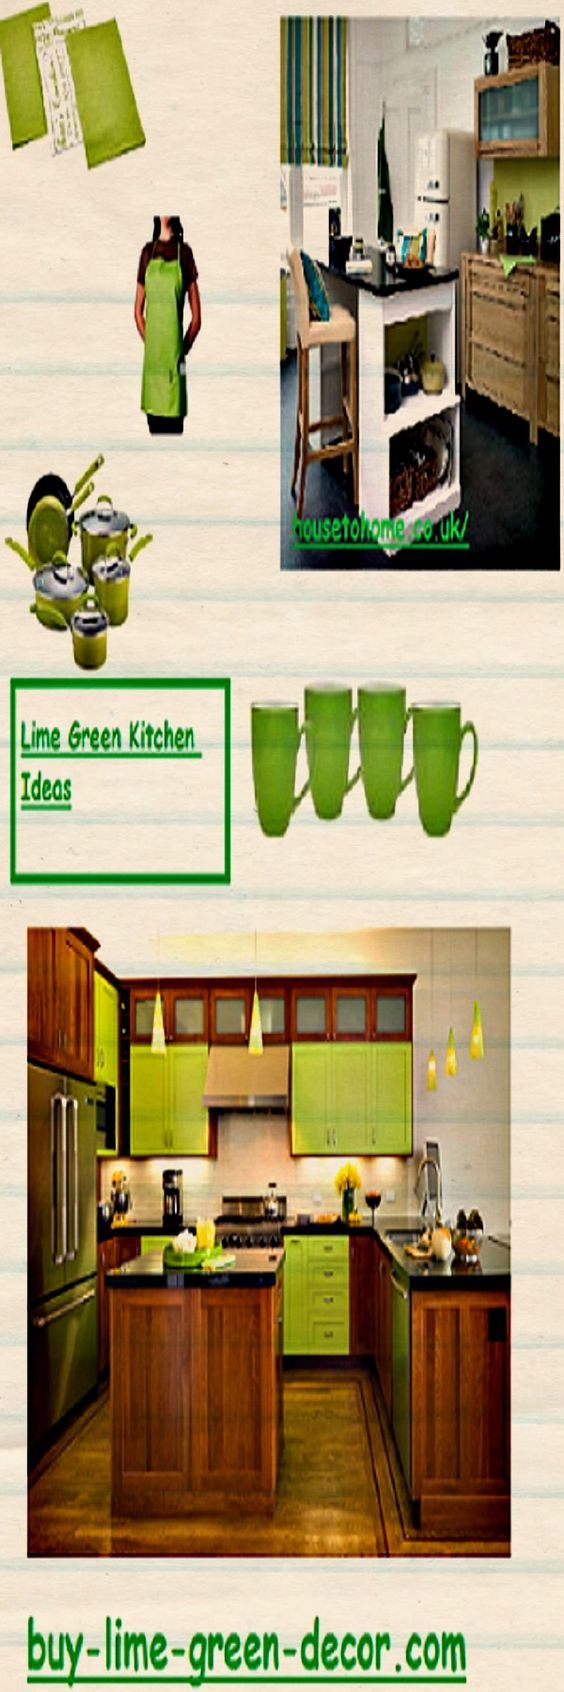 Lime green kitchen ideas for inspiration